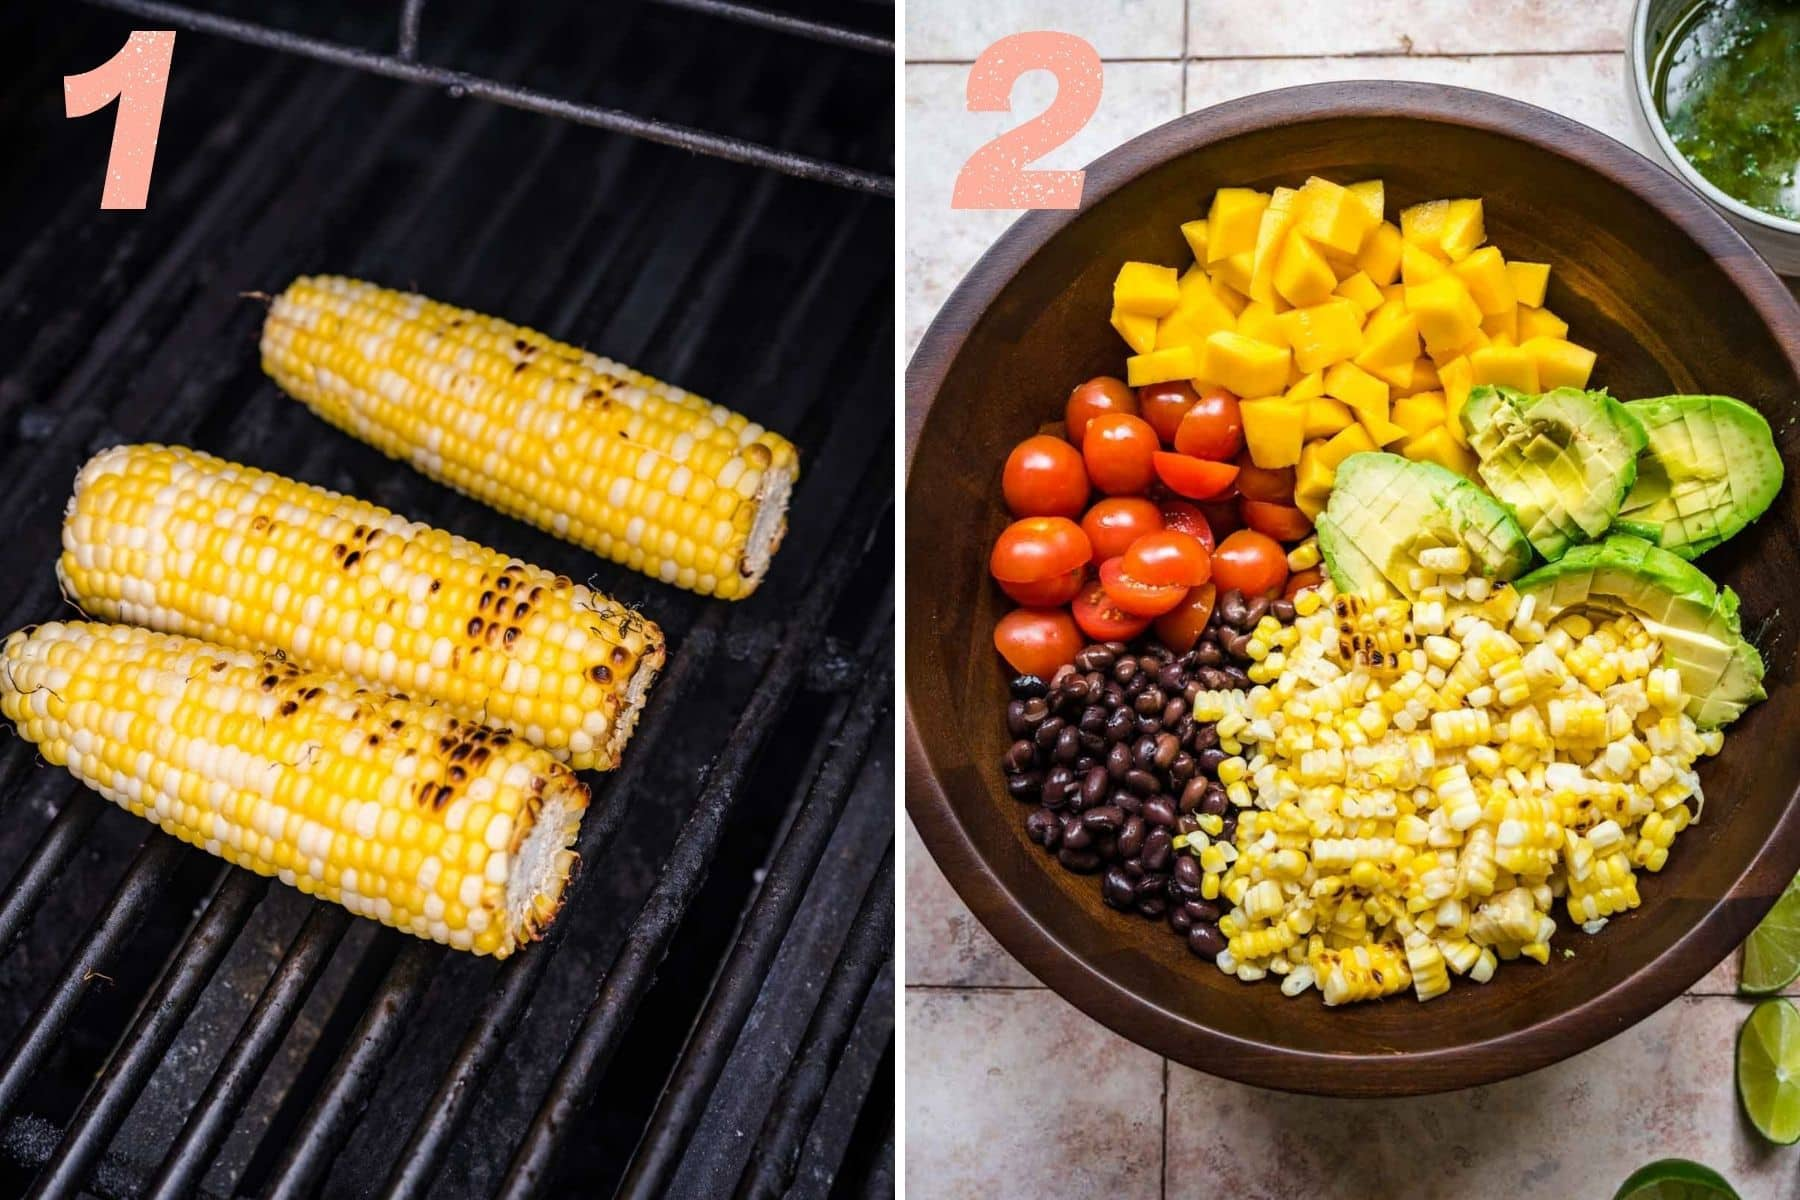 on the left: corn on the grill. on the right: black bean mango salad ingredients in bowl before mixing.